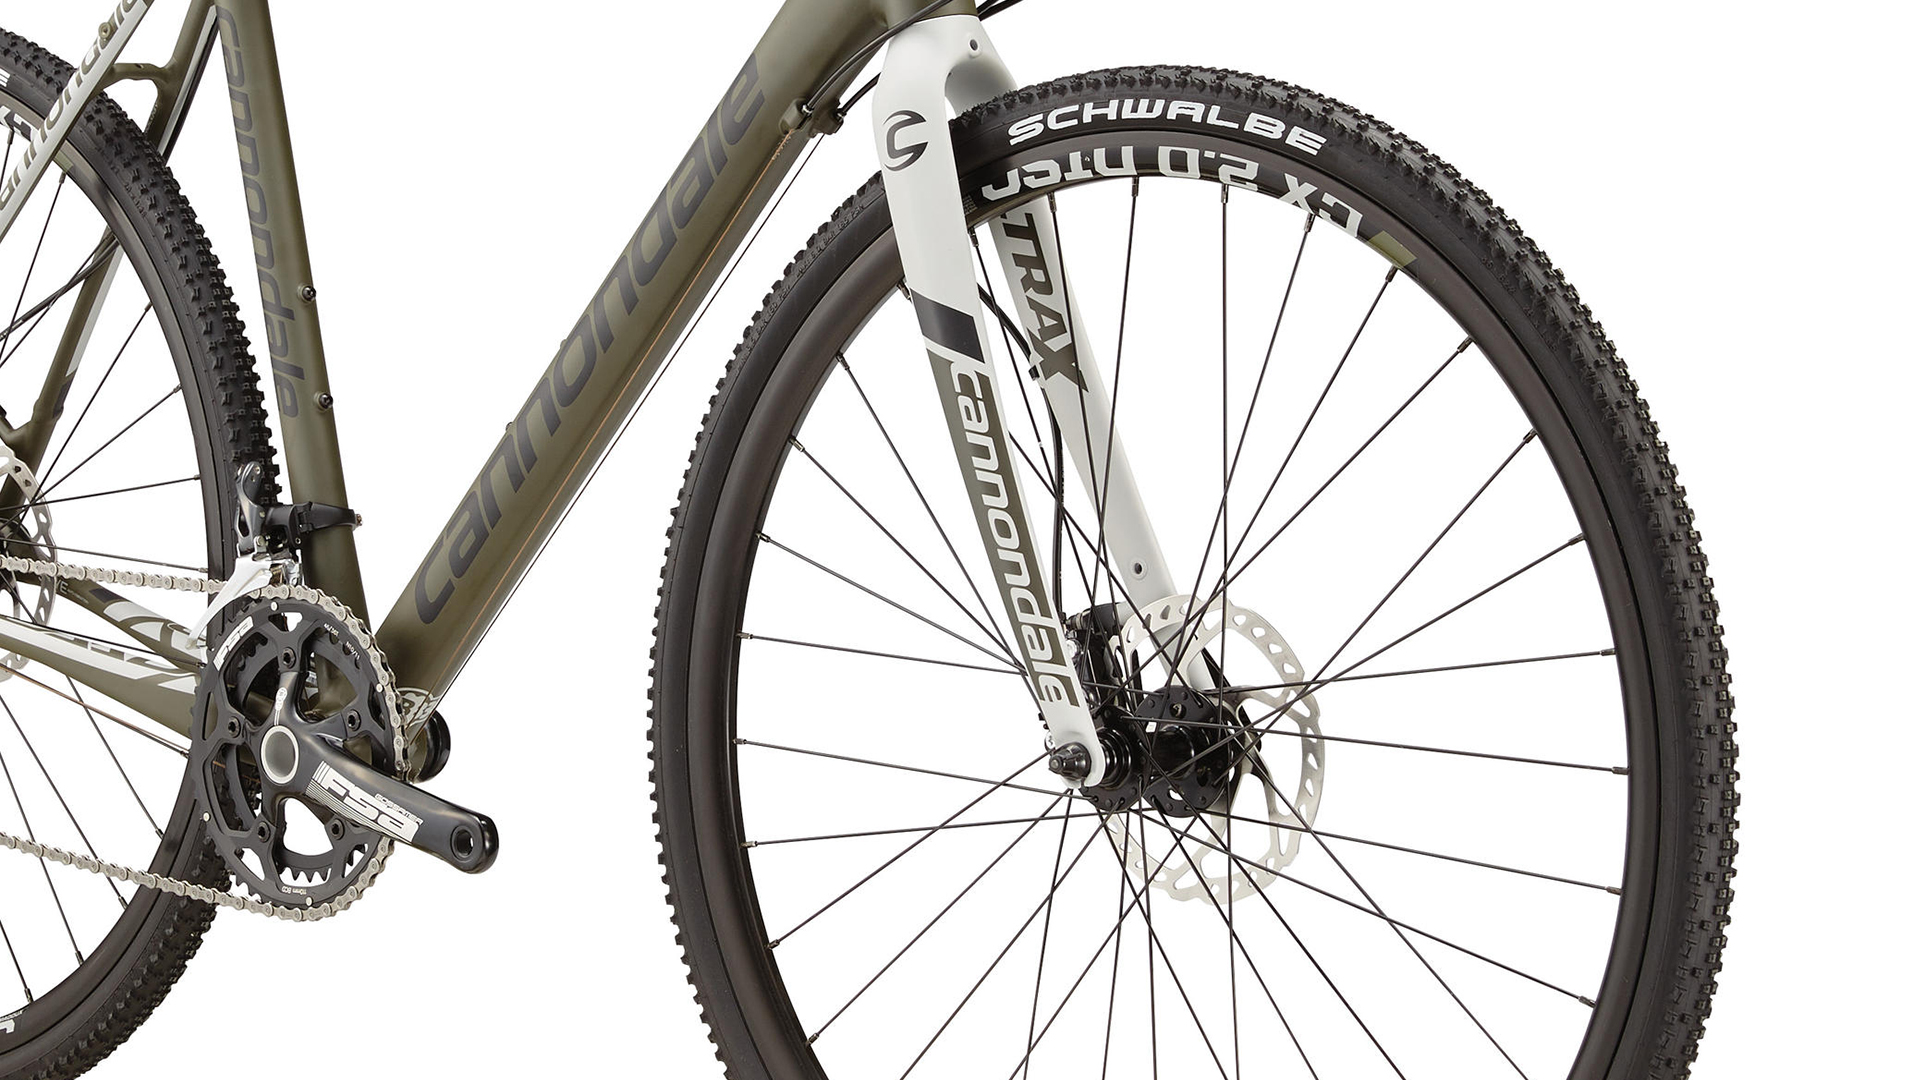 Cannondale Ultrax Fork Recall